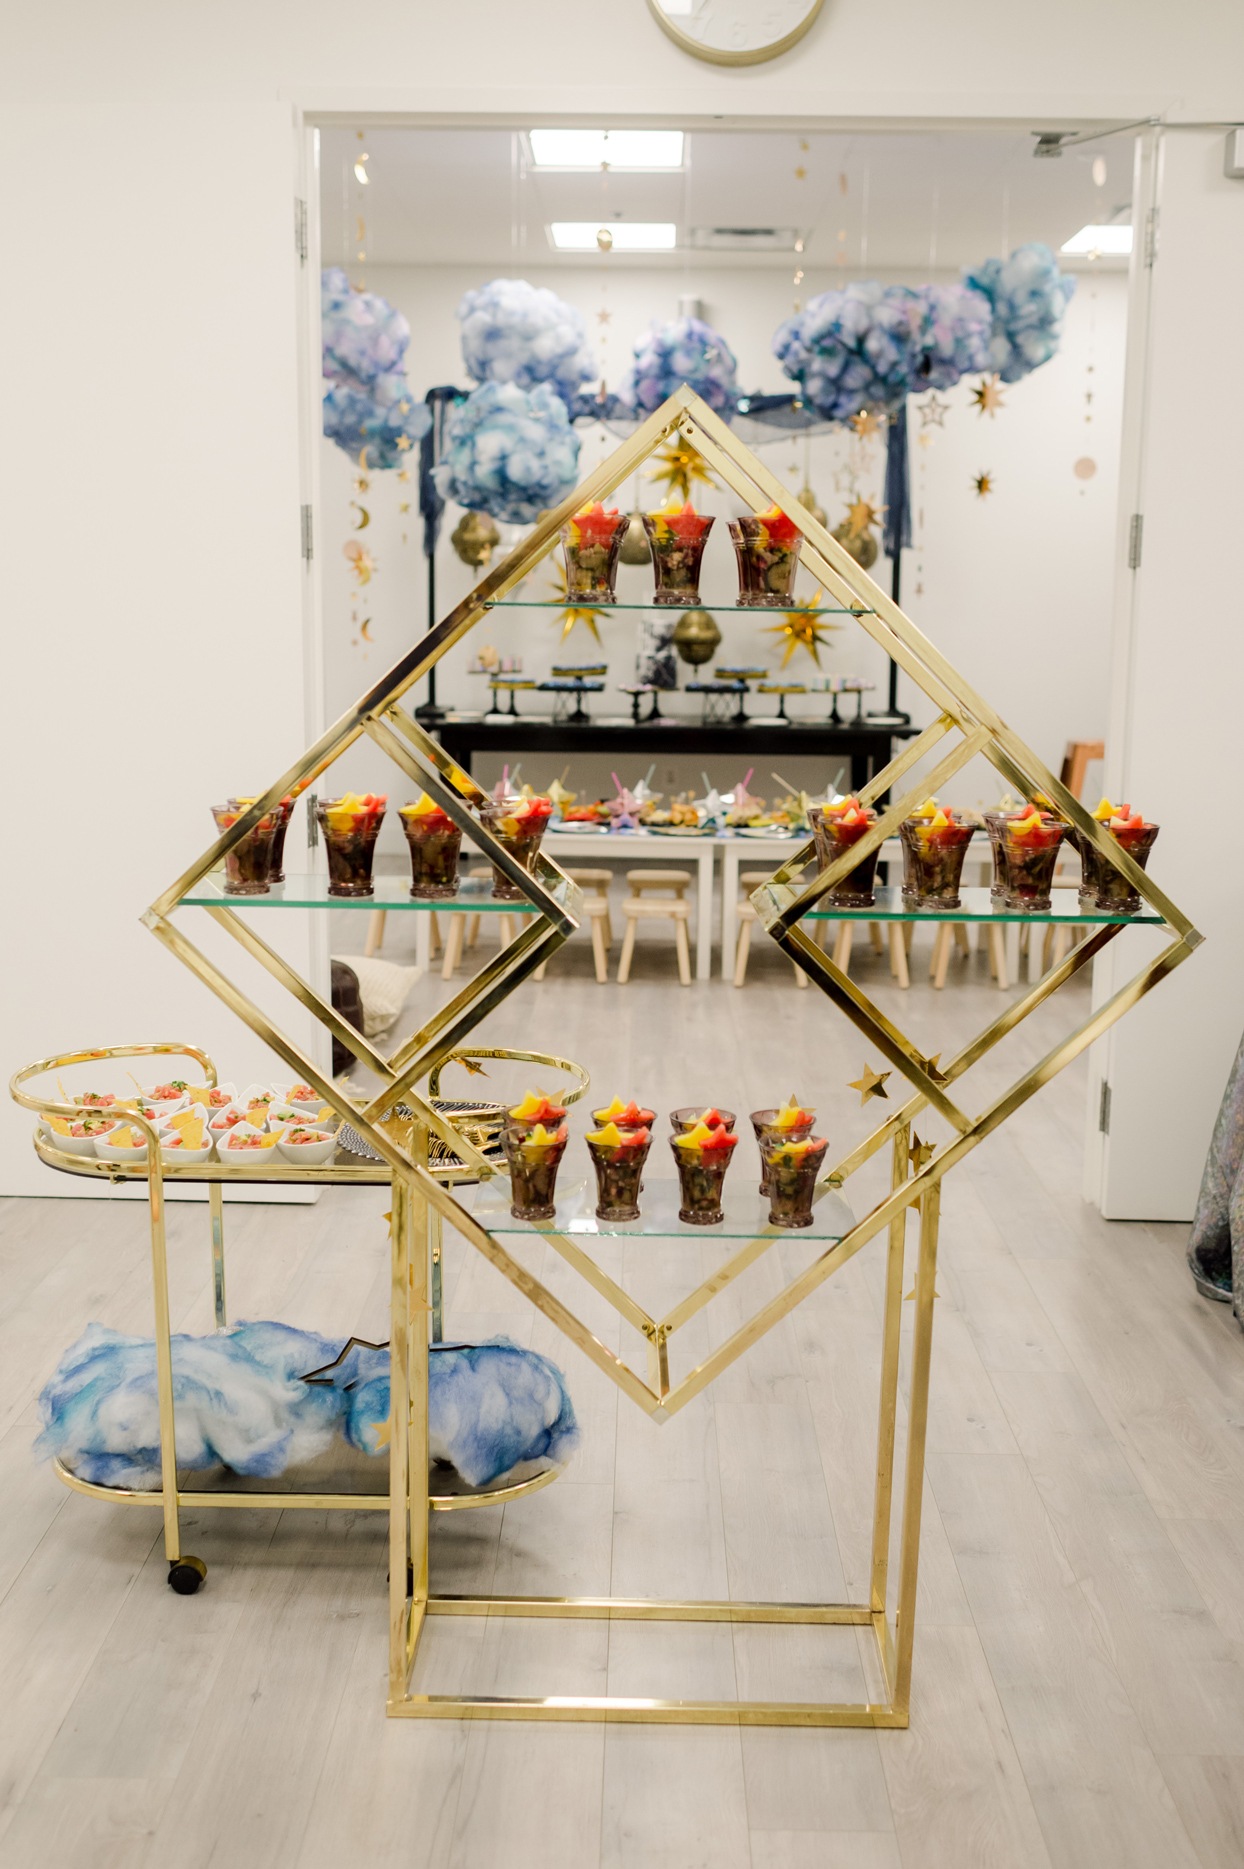 golden framed display serving table and cart with galaxy themed party snacks